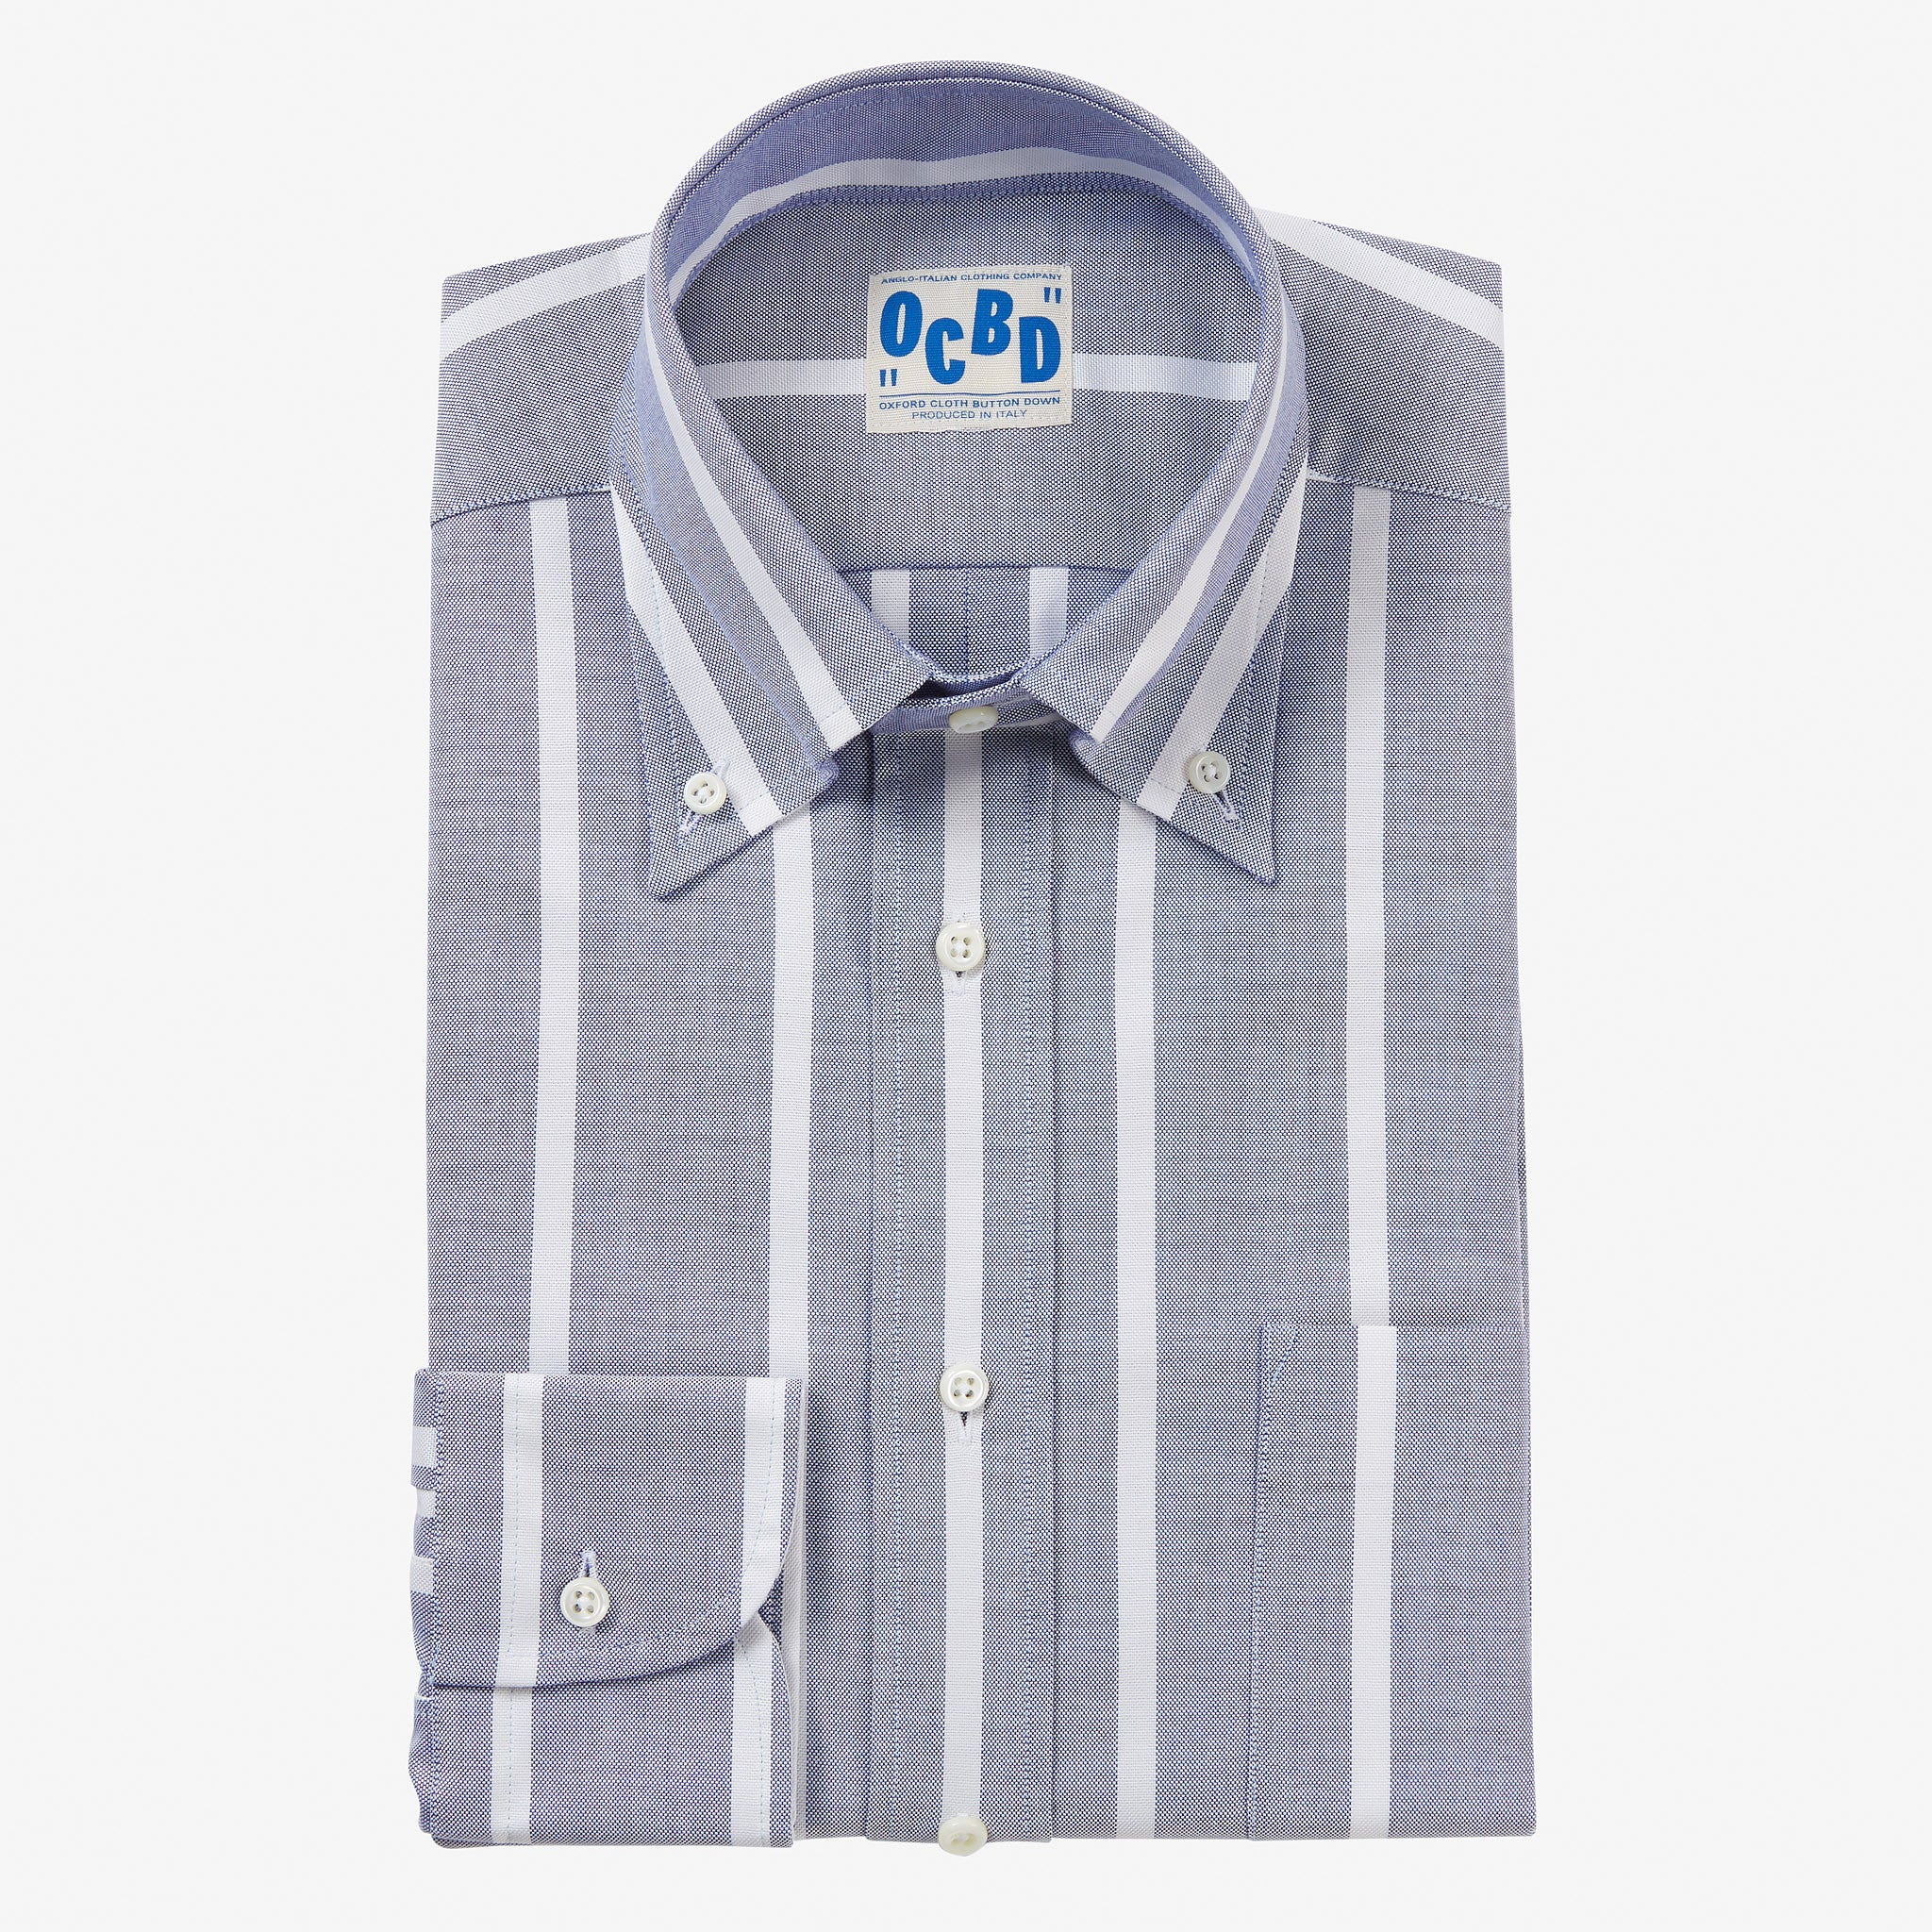 OCBD Shirt Thick Wide Reverse Stripe Blue Oxford